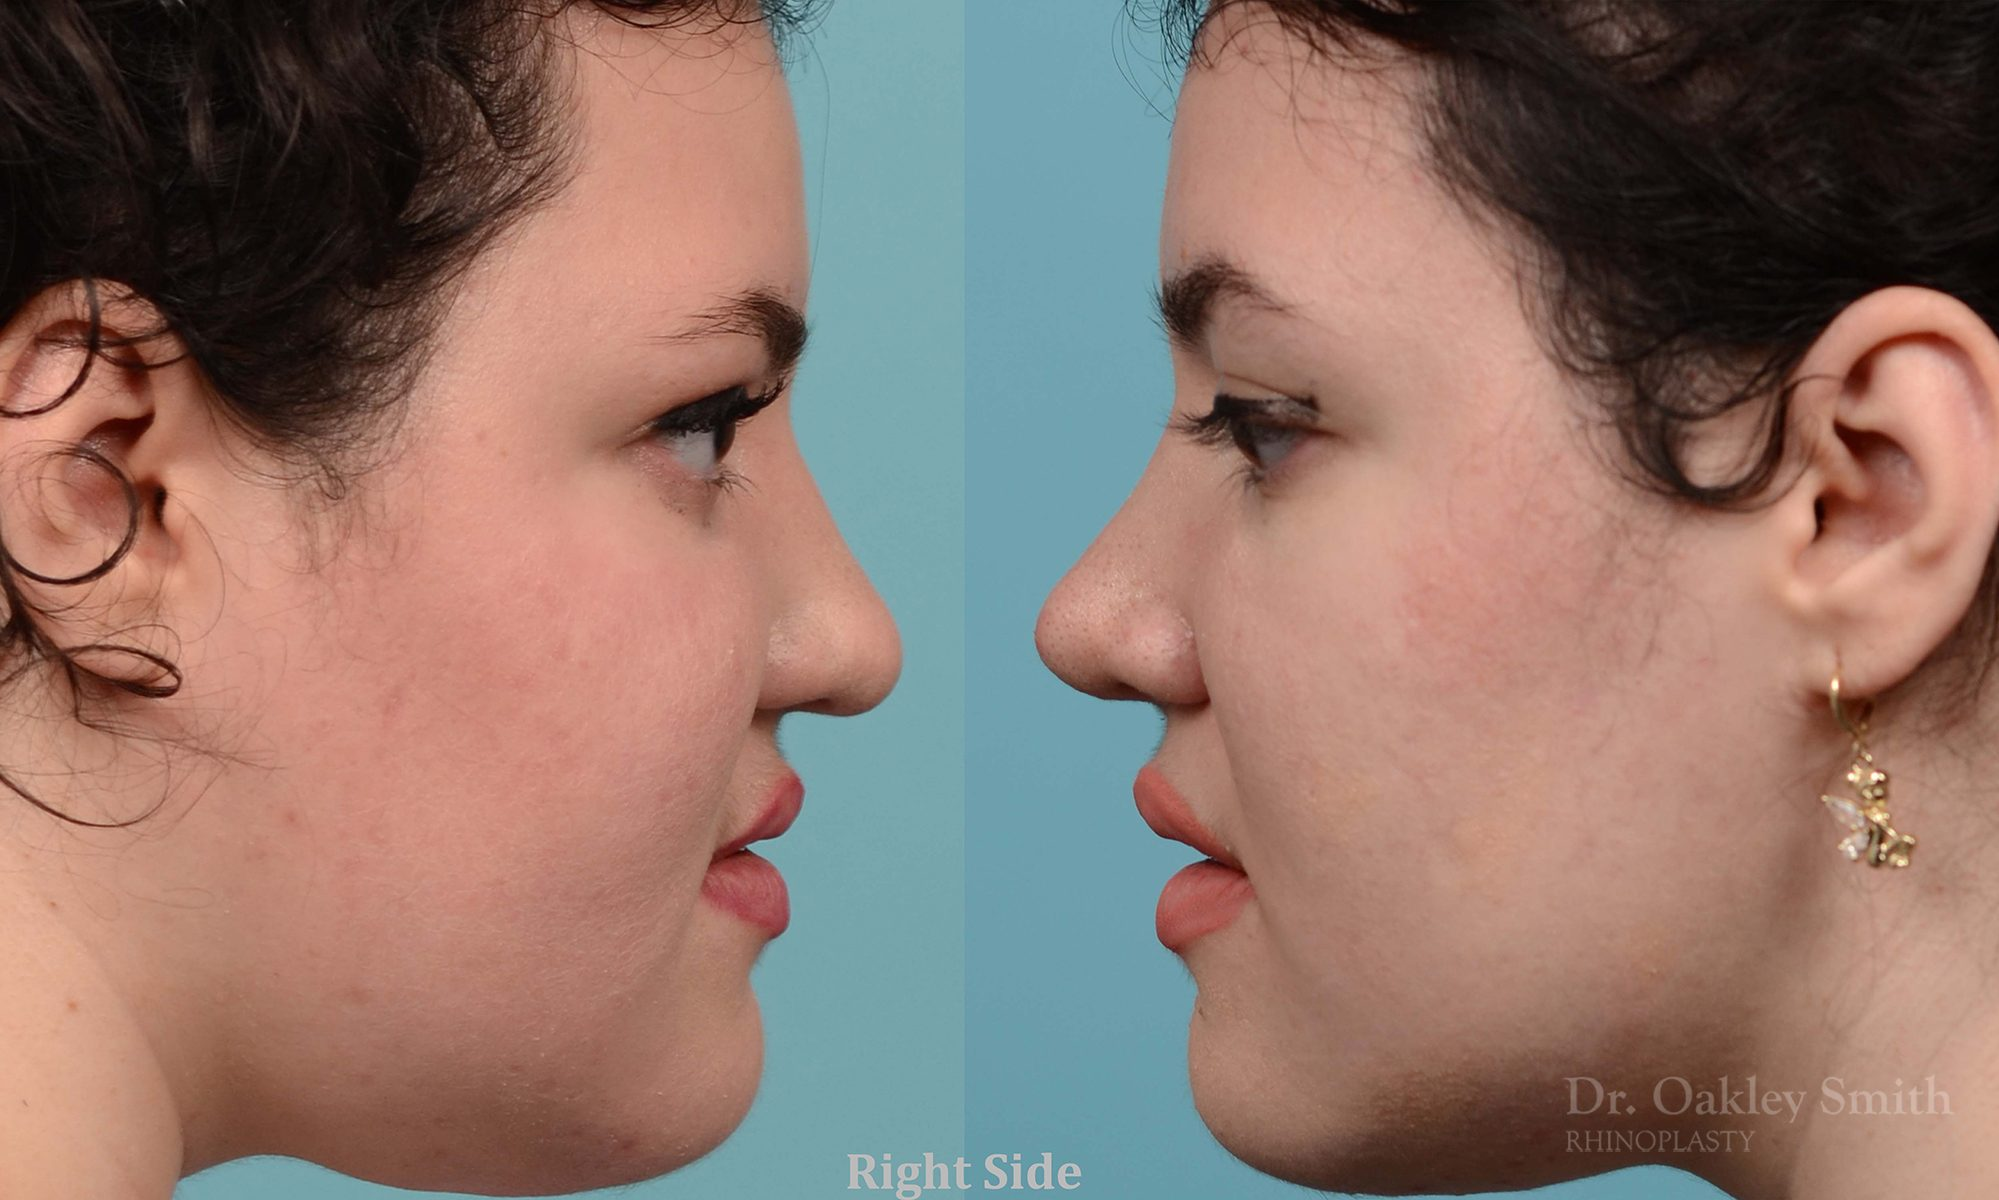 Rhinoplasty surgery to create a slightly curved profile view